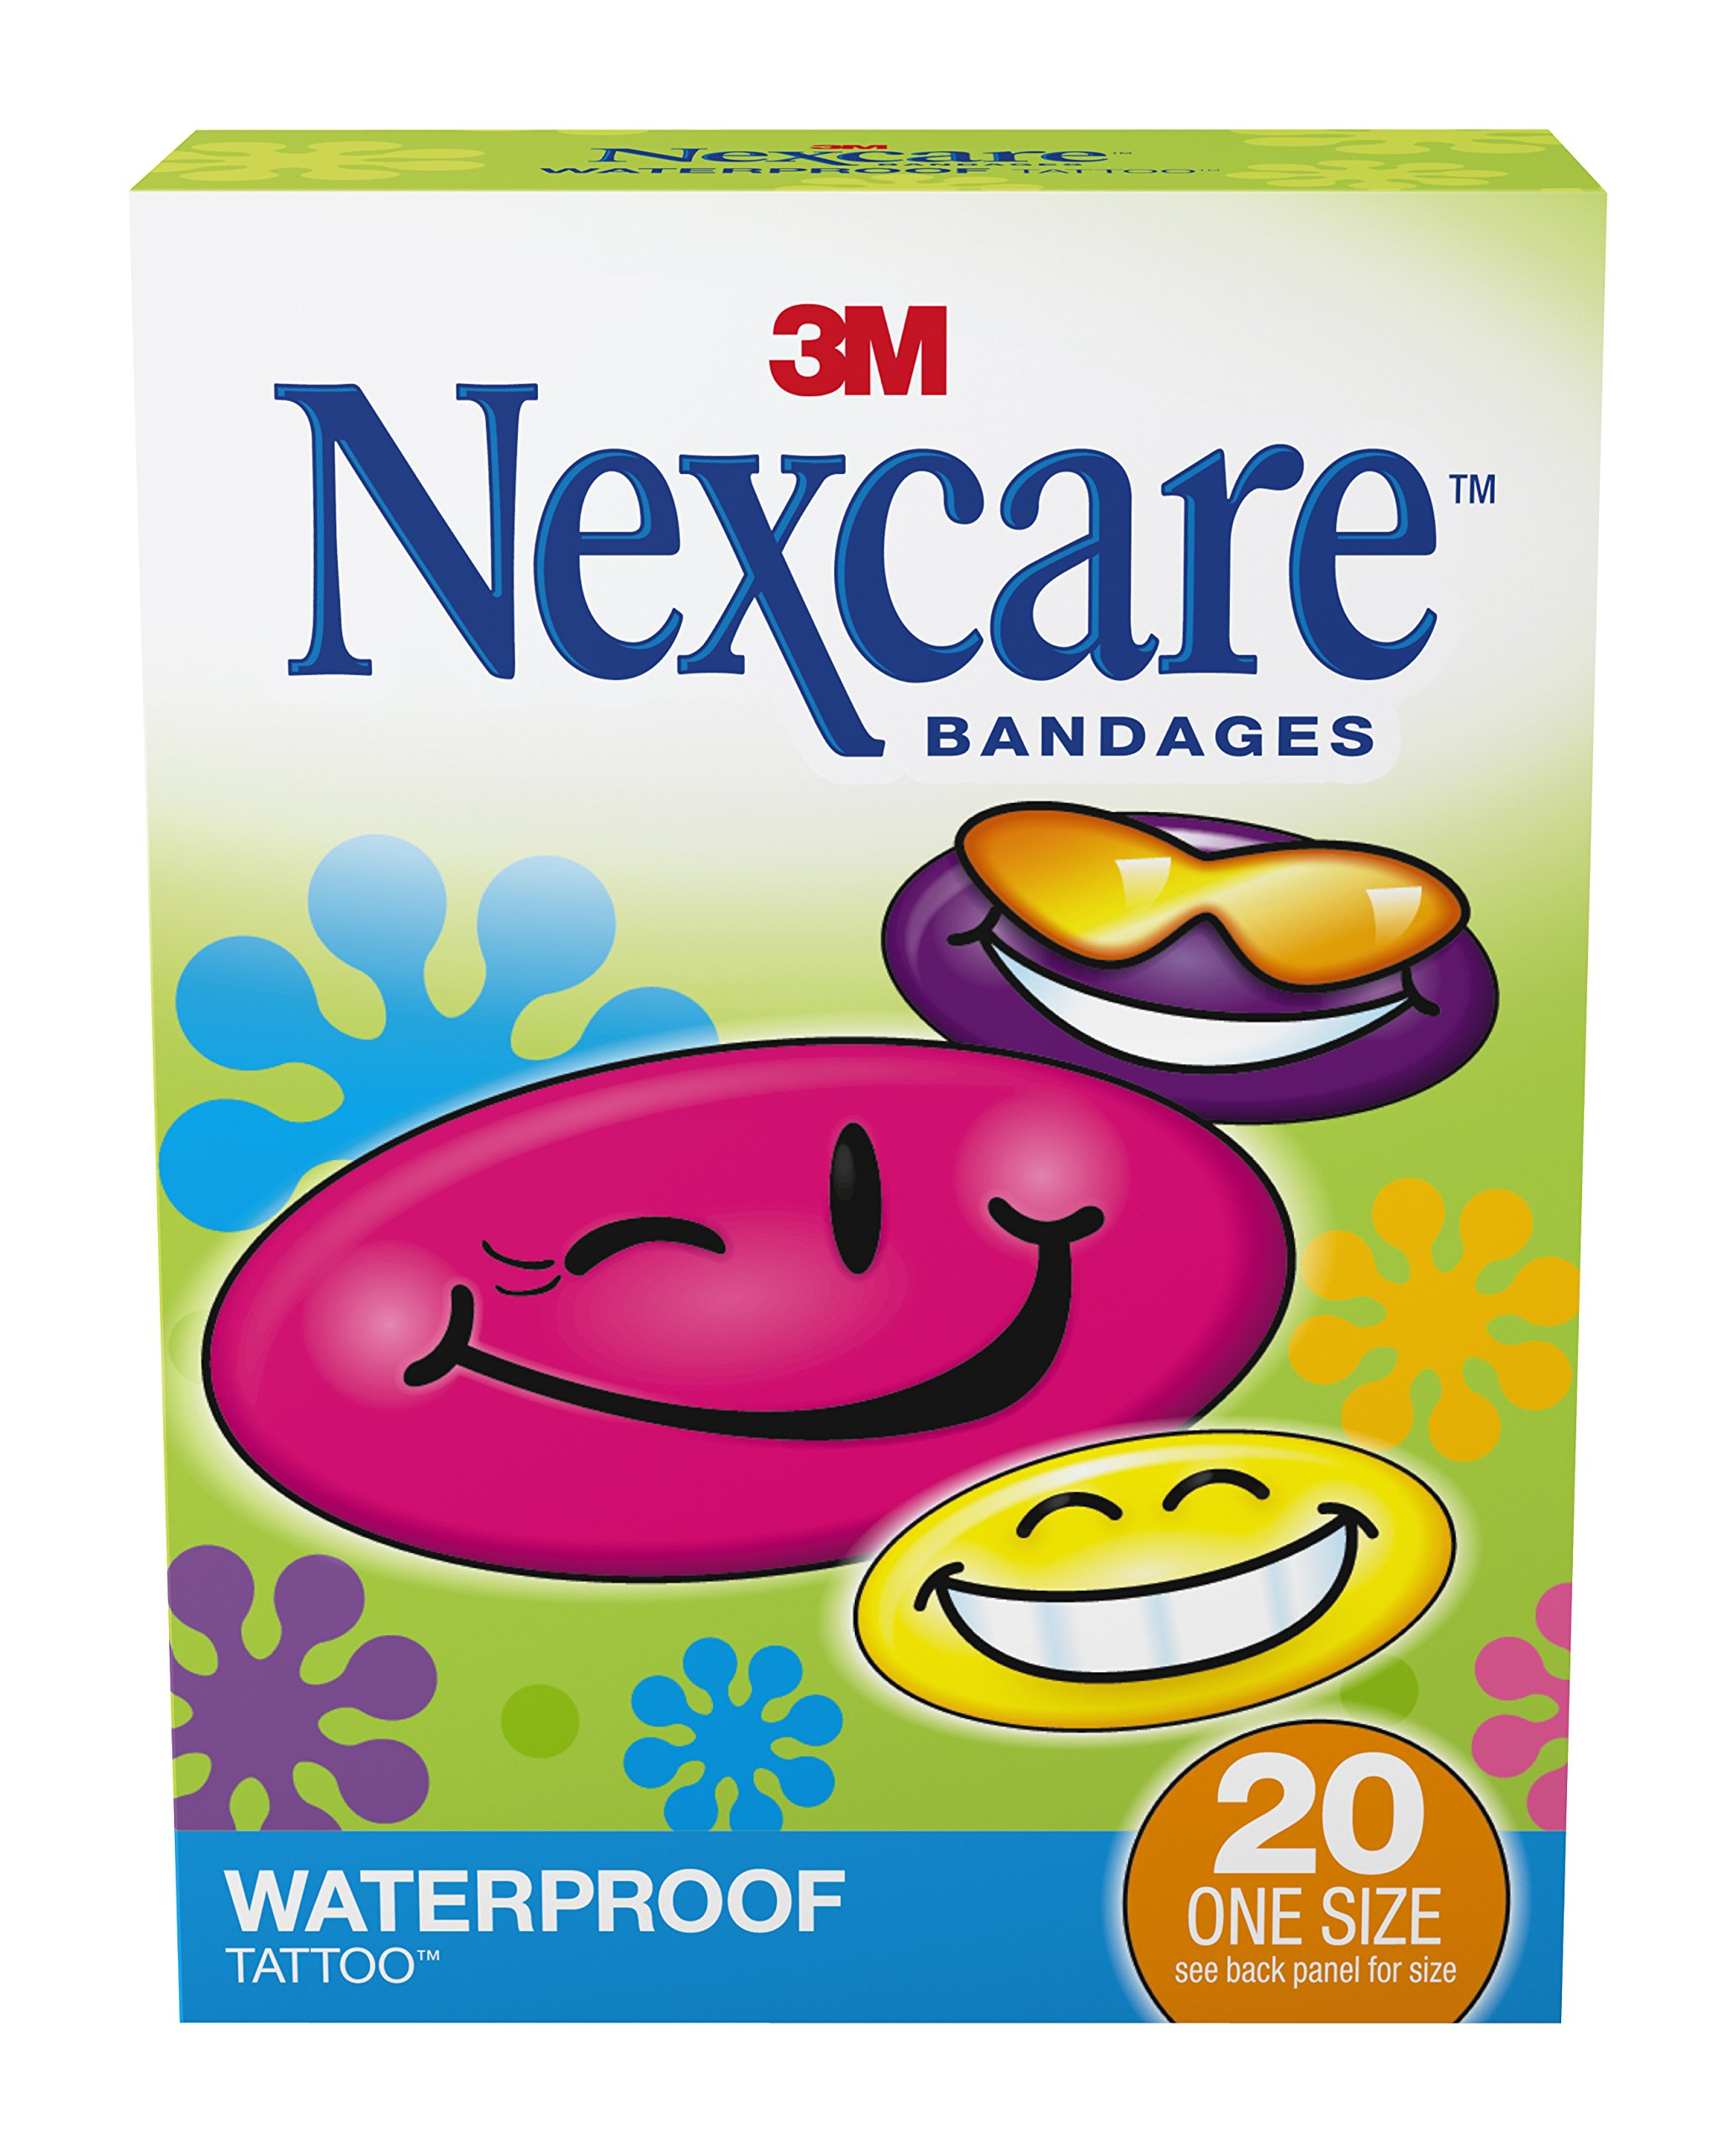 Nexcare Tattoo Waterproof Bandages, Dirtproof, Germproof, 20-Count Packages (Pack of 12) by Nexcare